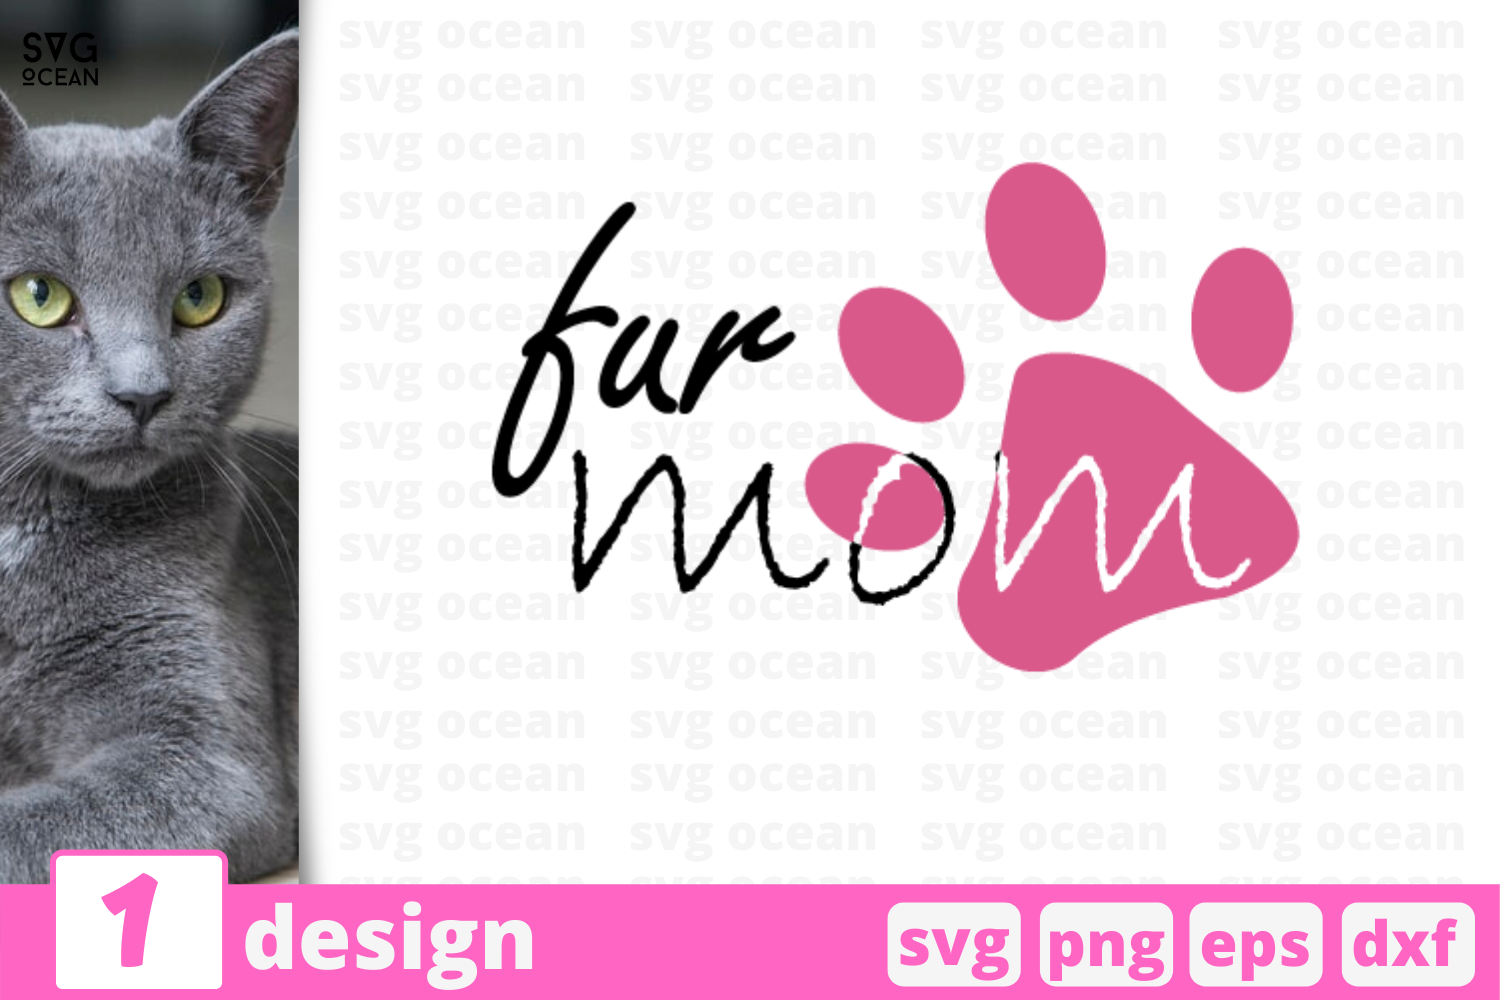 Download Free 1 Fur Mom Svg Bundle Quotes Cricut Svg Graphic By Svgocean for Cricut Explore, Silhouette and other cutting machines.